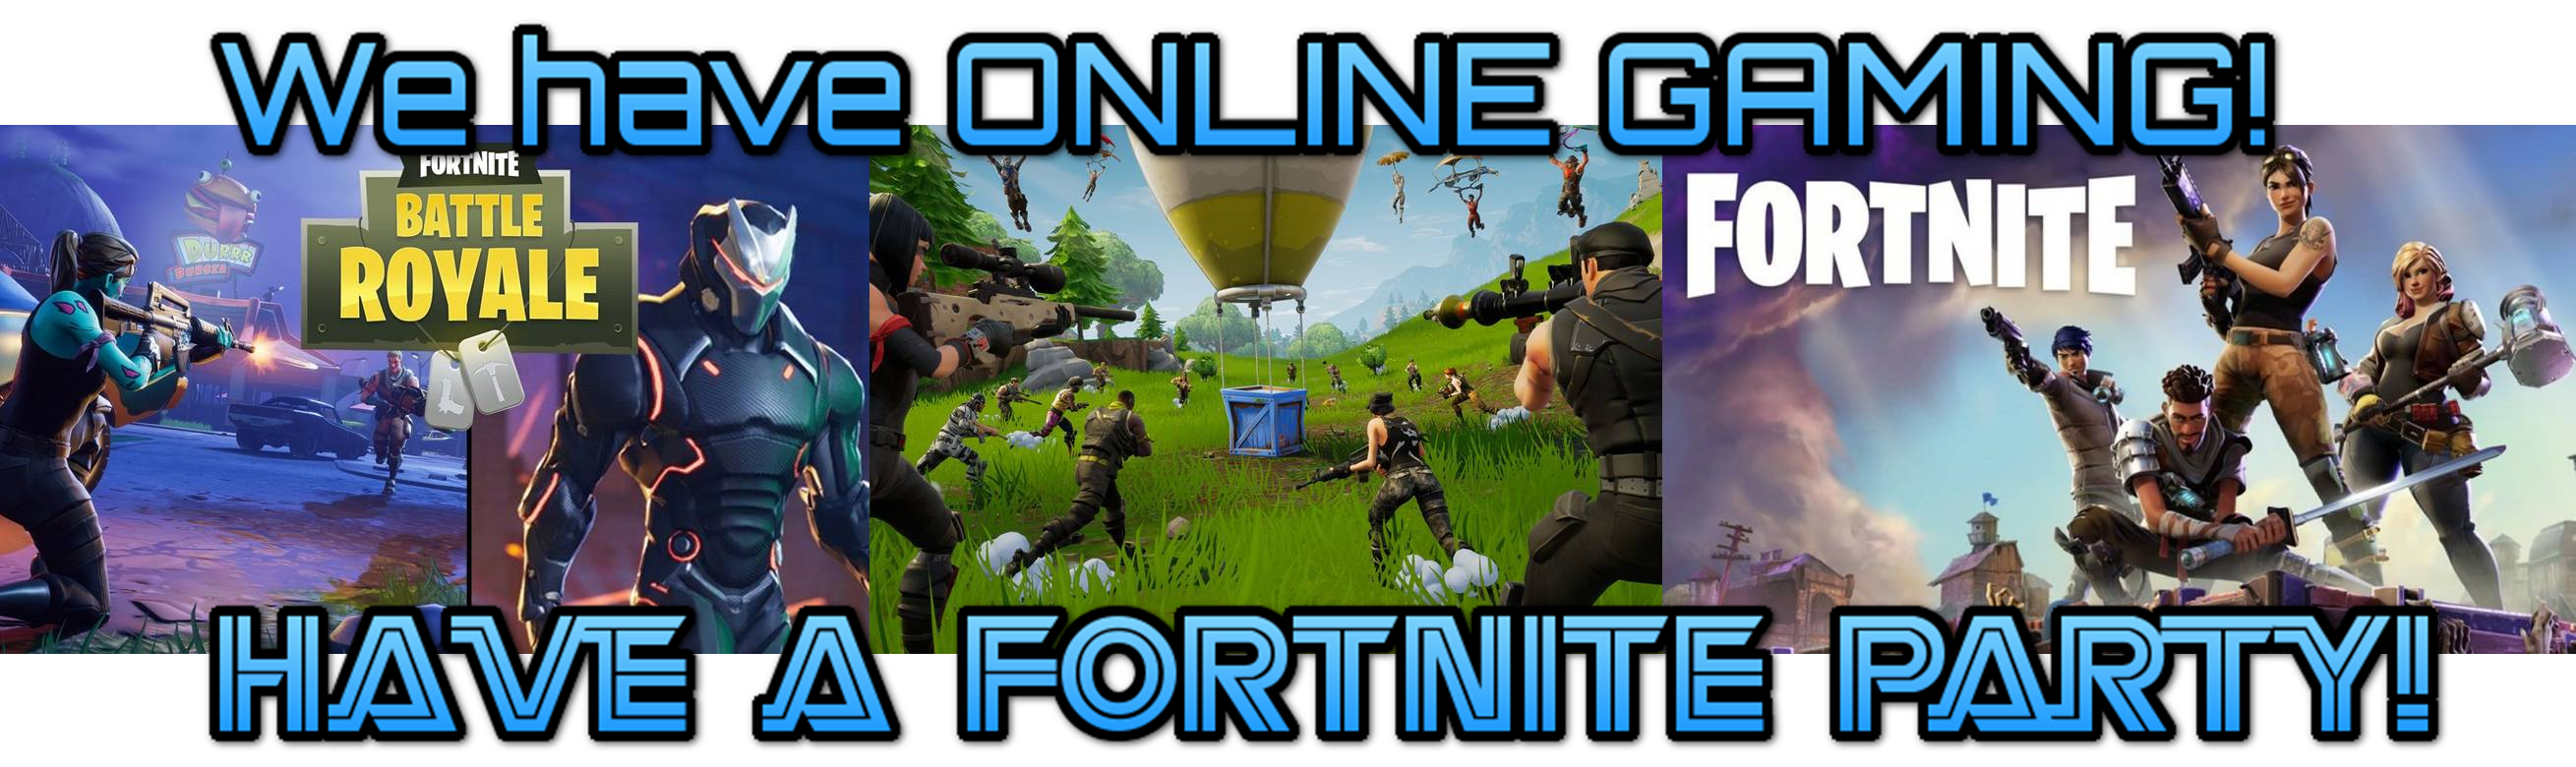 Have a Fortnite or Apex Legends online gaming birthday party in Charleston, Summerville or Moncks Corner, SC